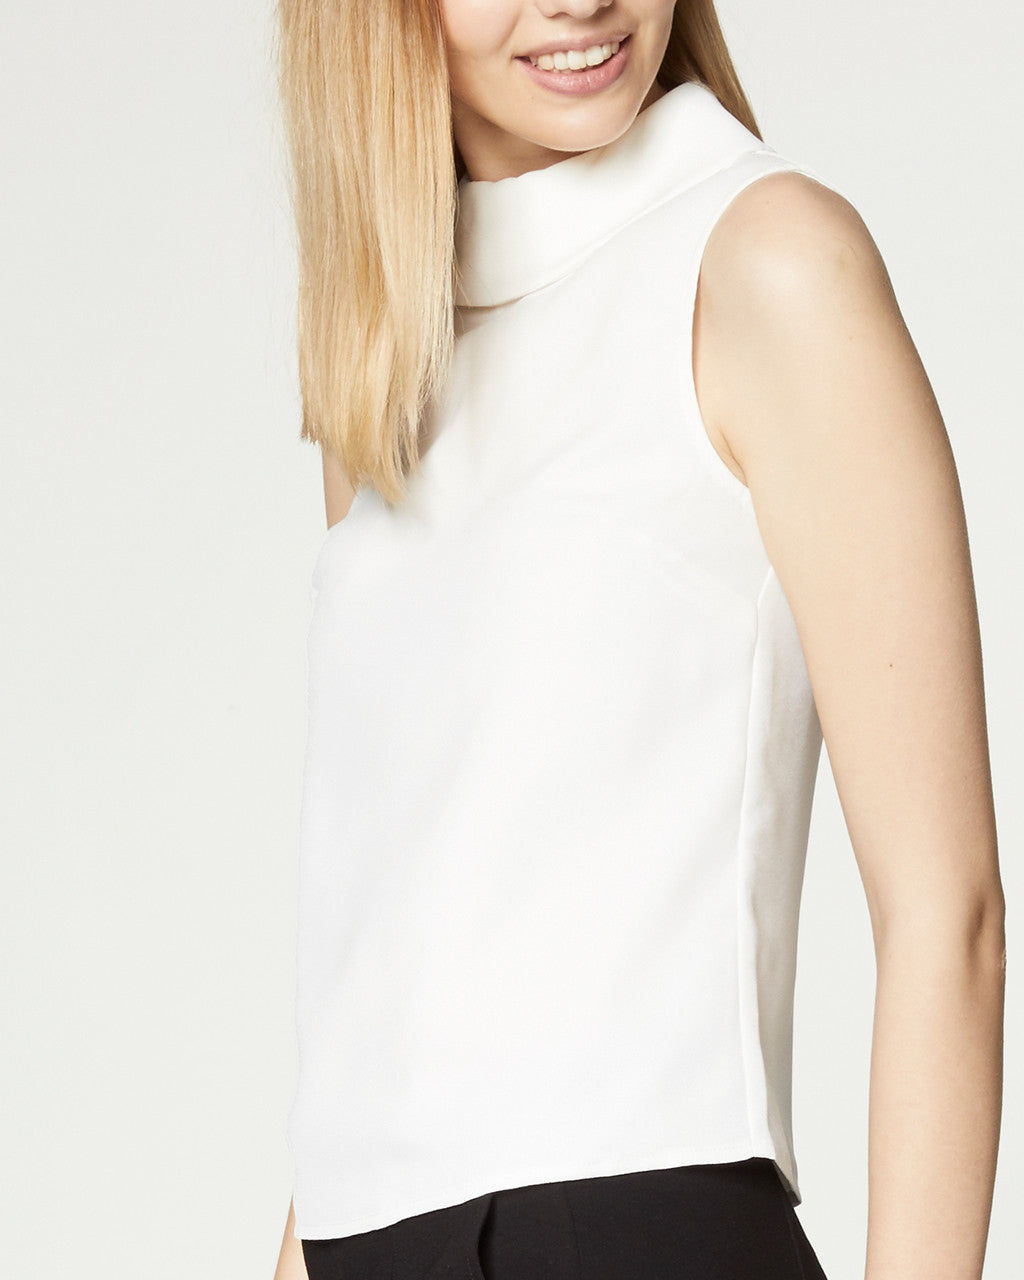 Boatneck Collar Top - White